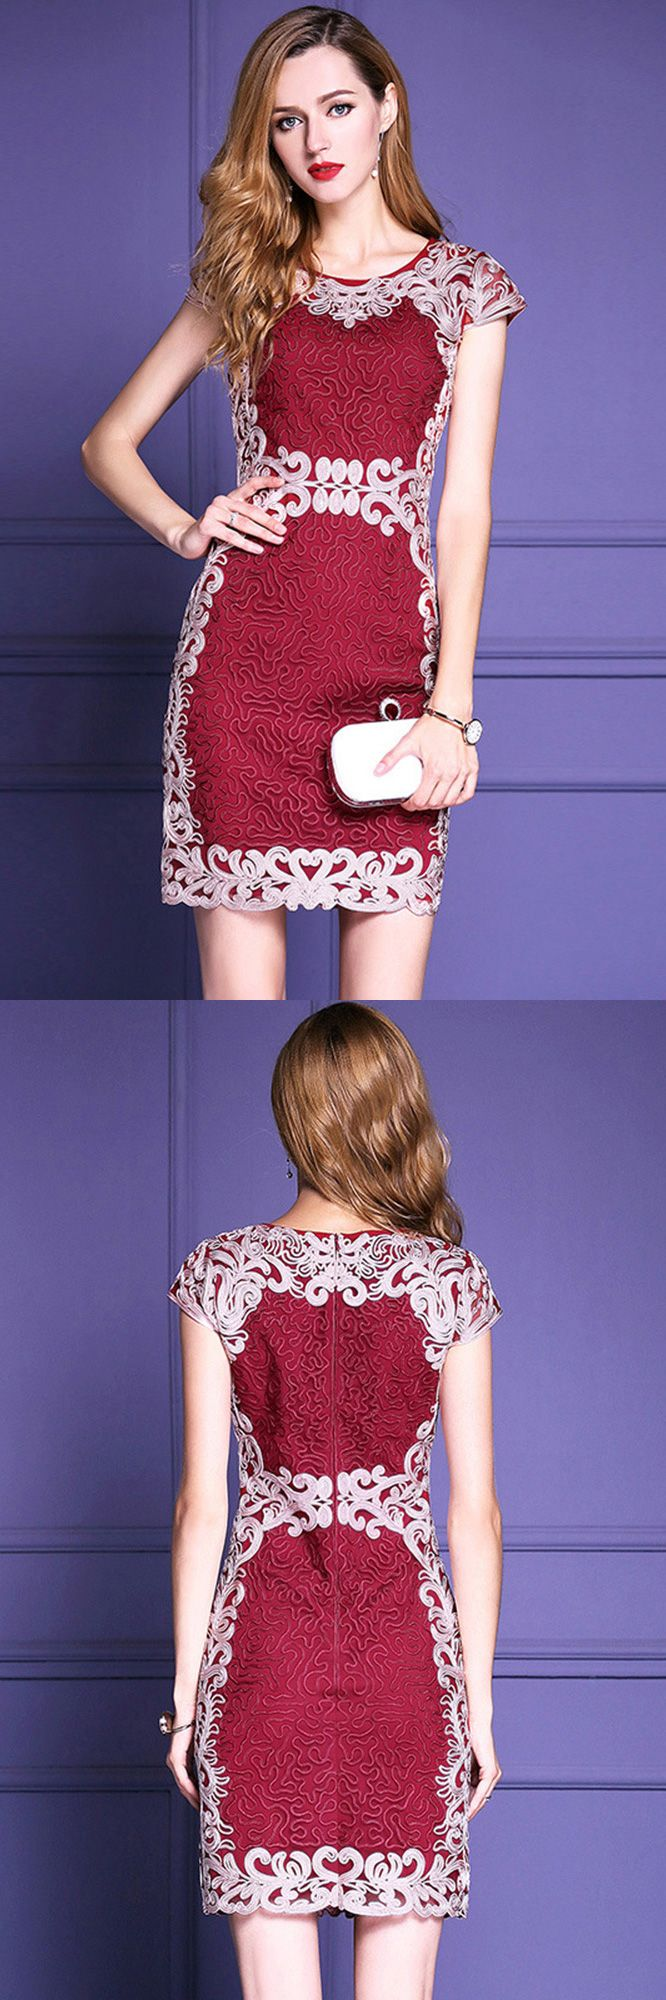 Only $79.99, Cocktail Dresses Burgundy Formal Embroidered Bodycon Cocktail Dress For Weddings #ZL8004 at #GemGrace. View more special Cocktail Dresses,Wedding Guest Dresses now? GemGrace is a solution for those who want to buy delicate gowns with affordable prices, a solution for those who have unique ideas about their gowns. High quality Classy the Guest collection new arrived, shop now!